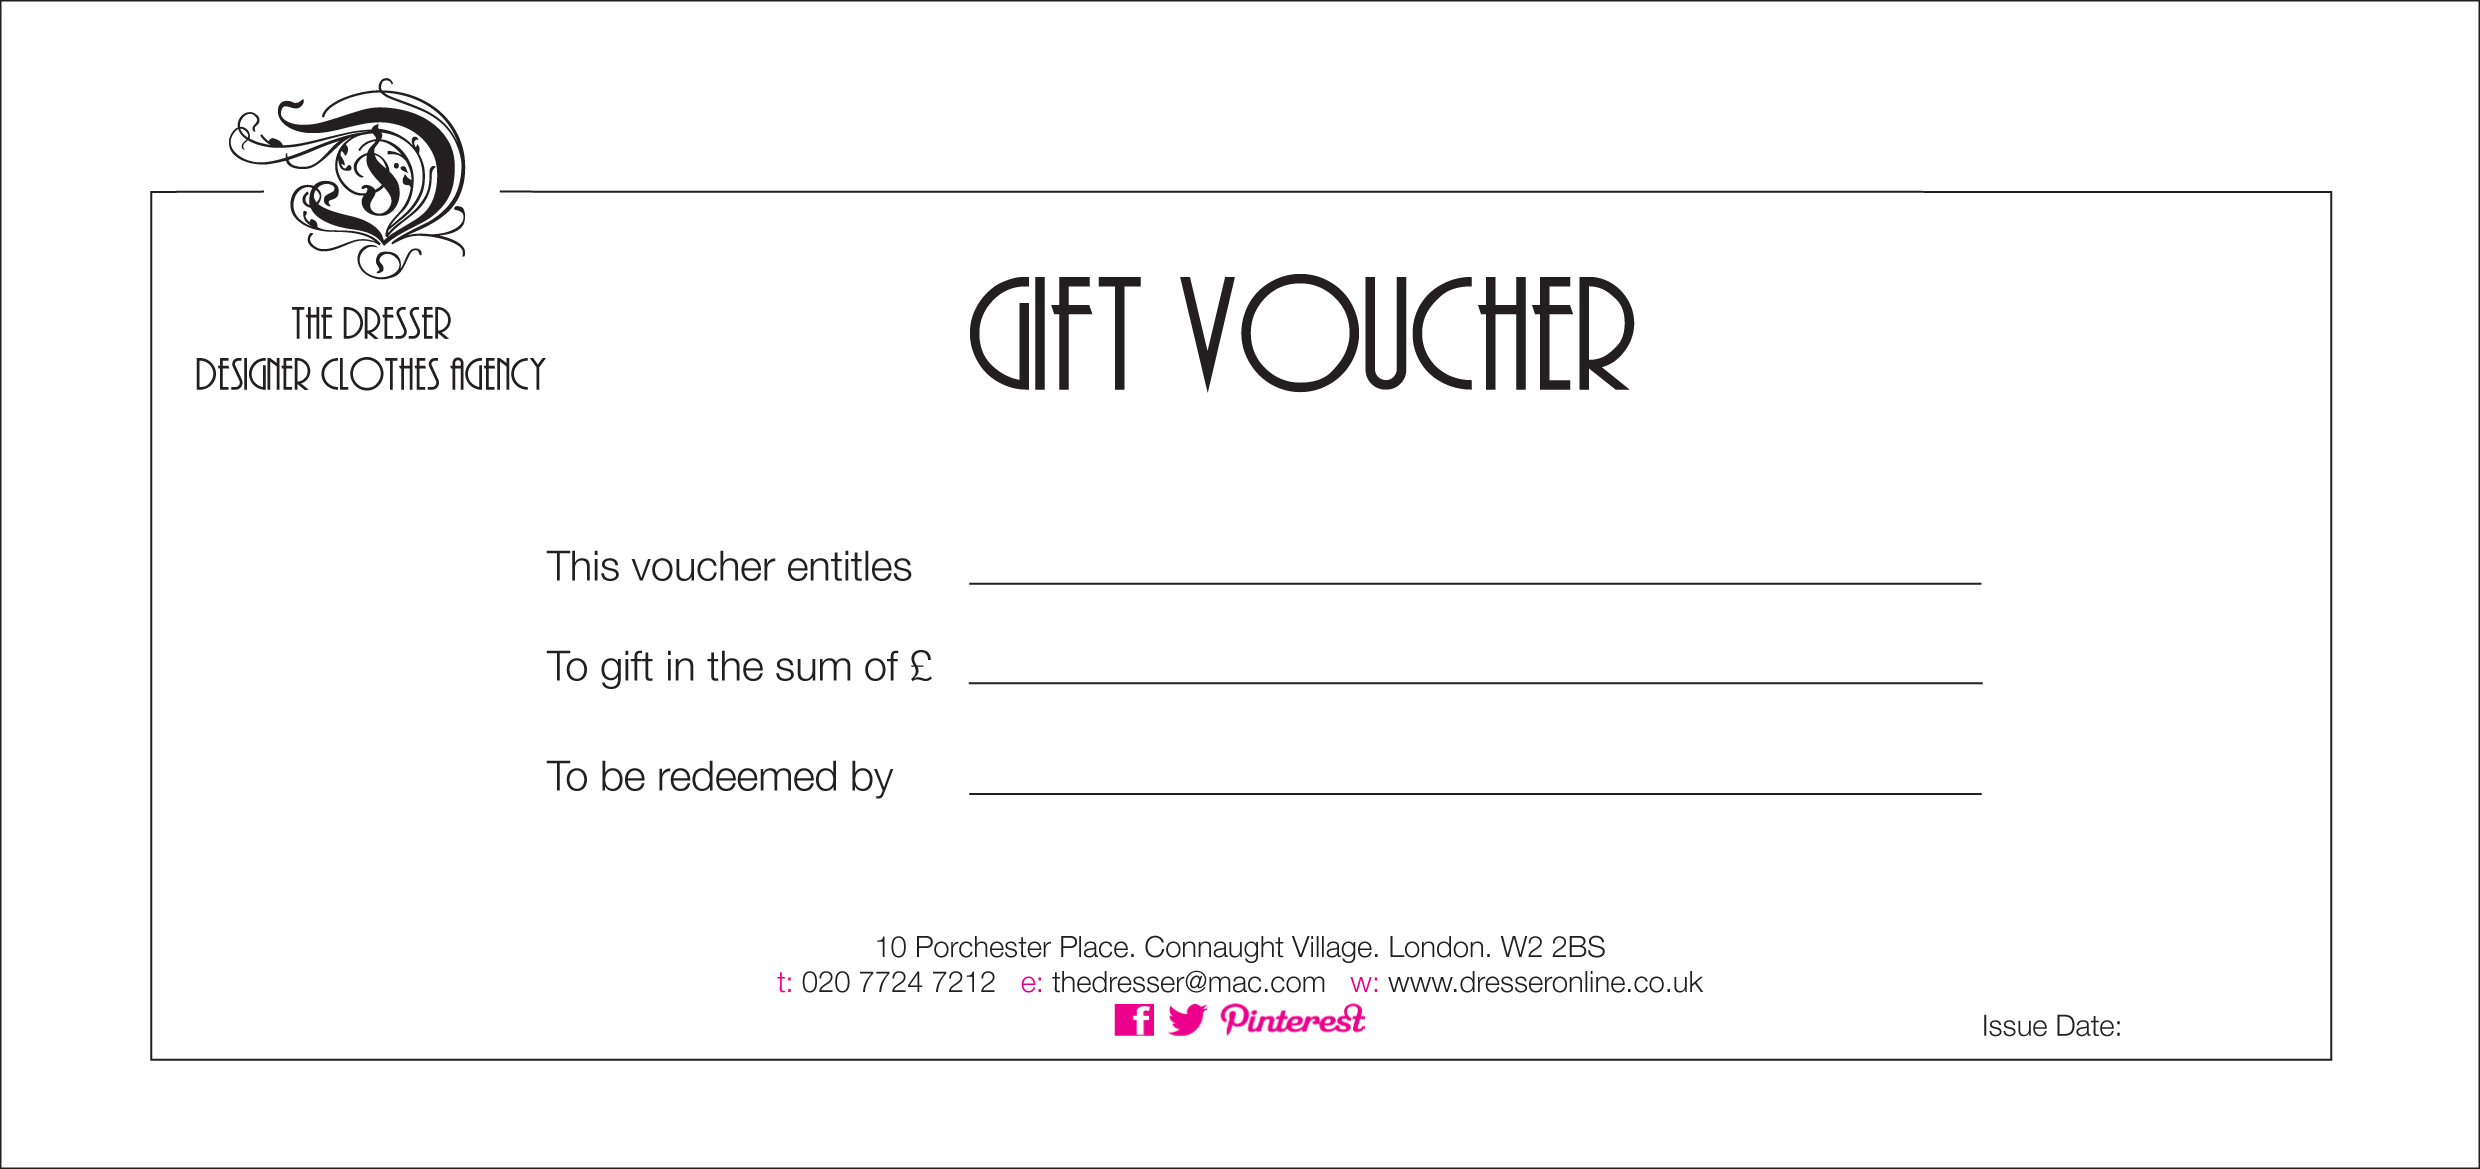 Gift voucher template word free download planner for Free gift certificate template word